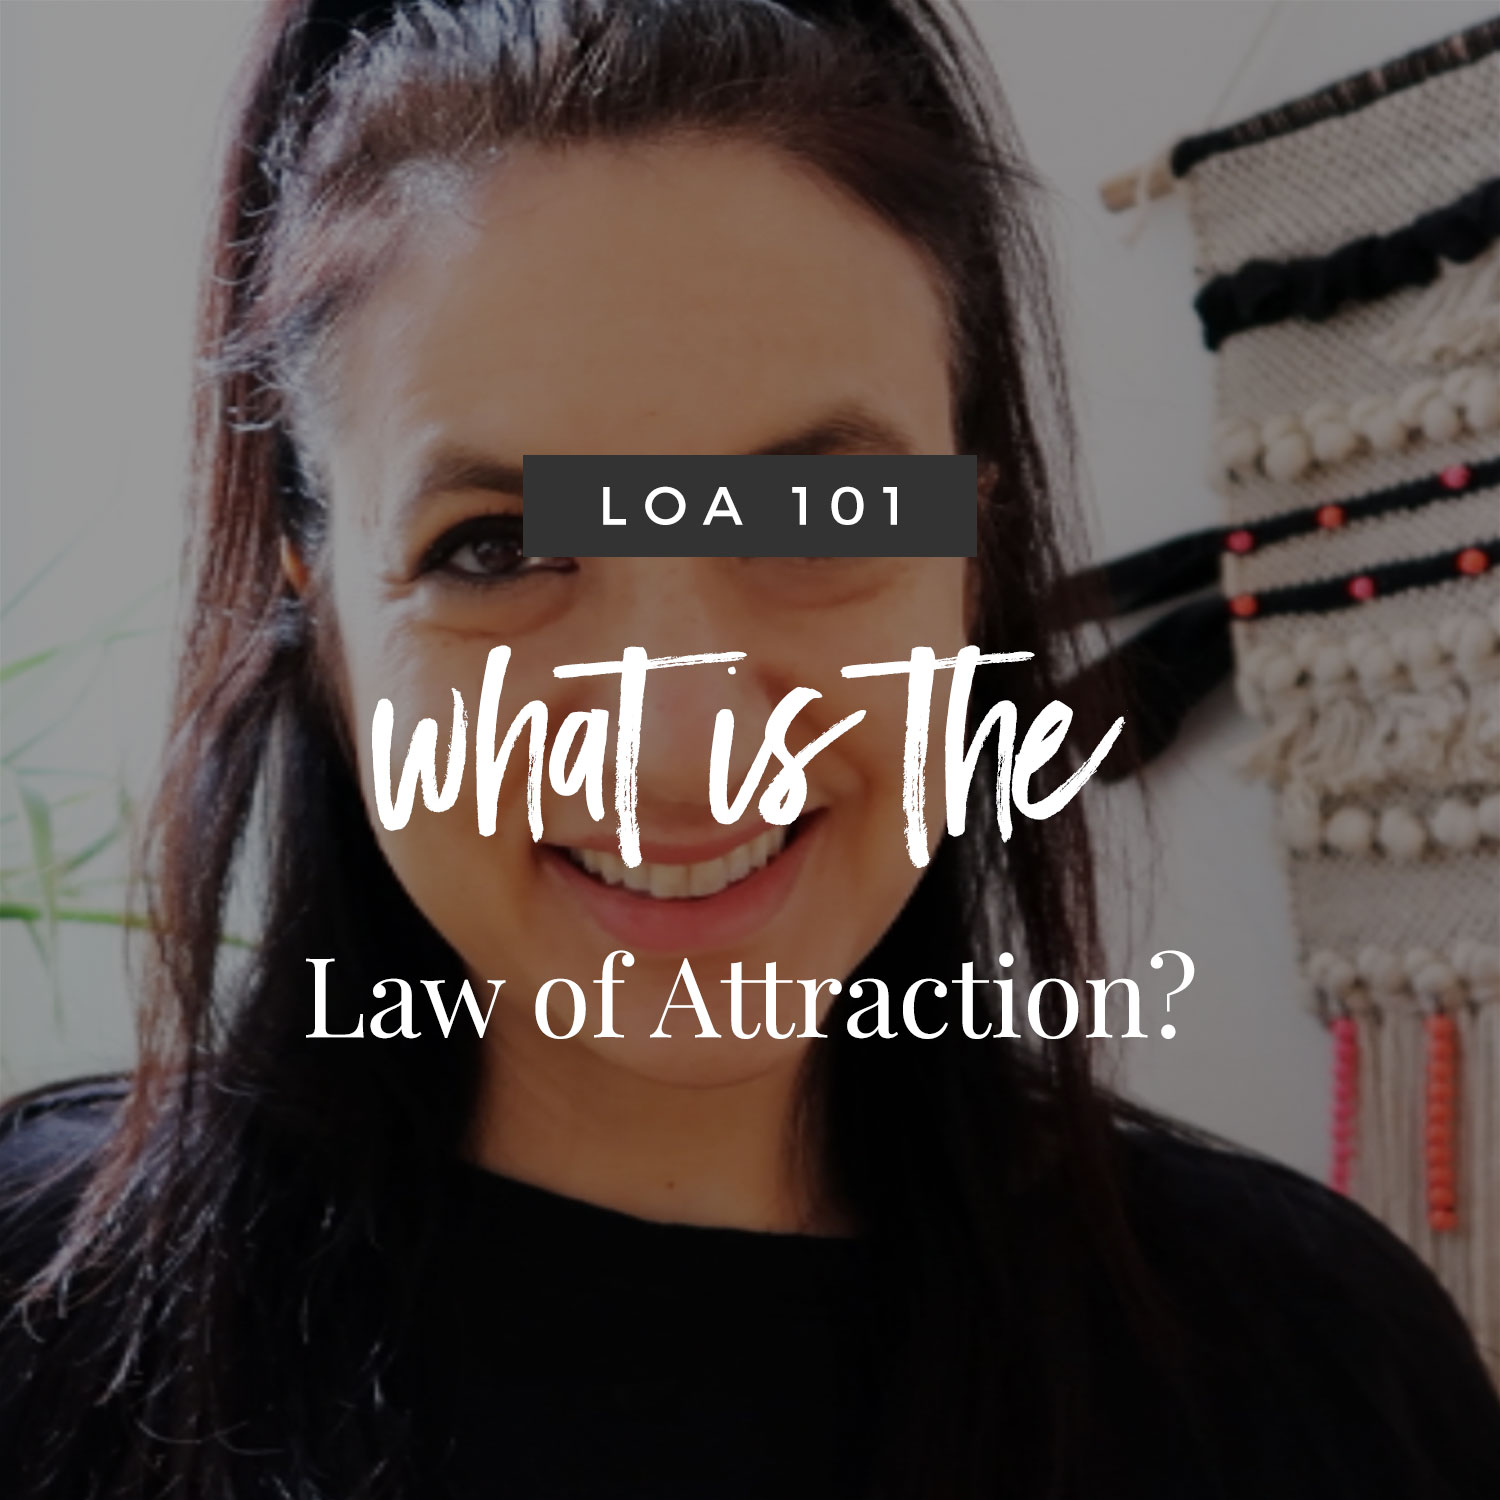 LoA 101: What Is The Law of Attraction?